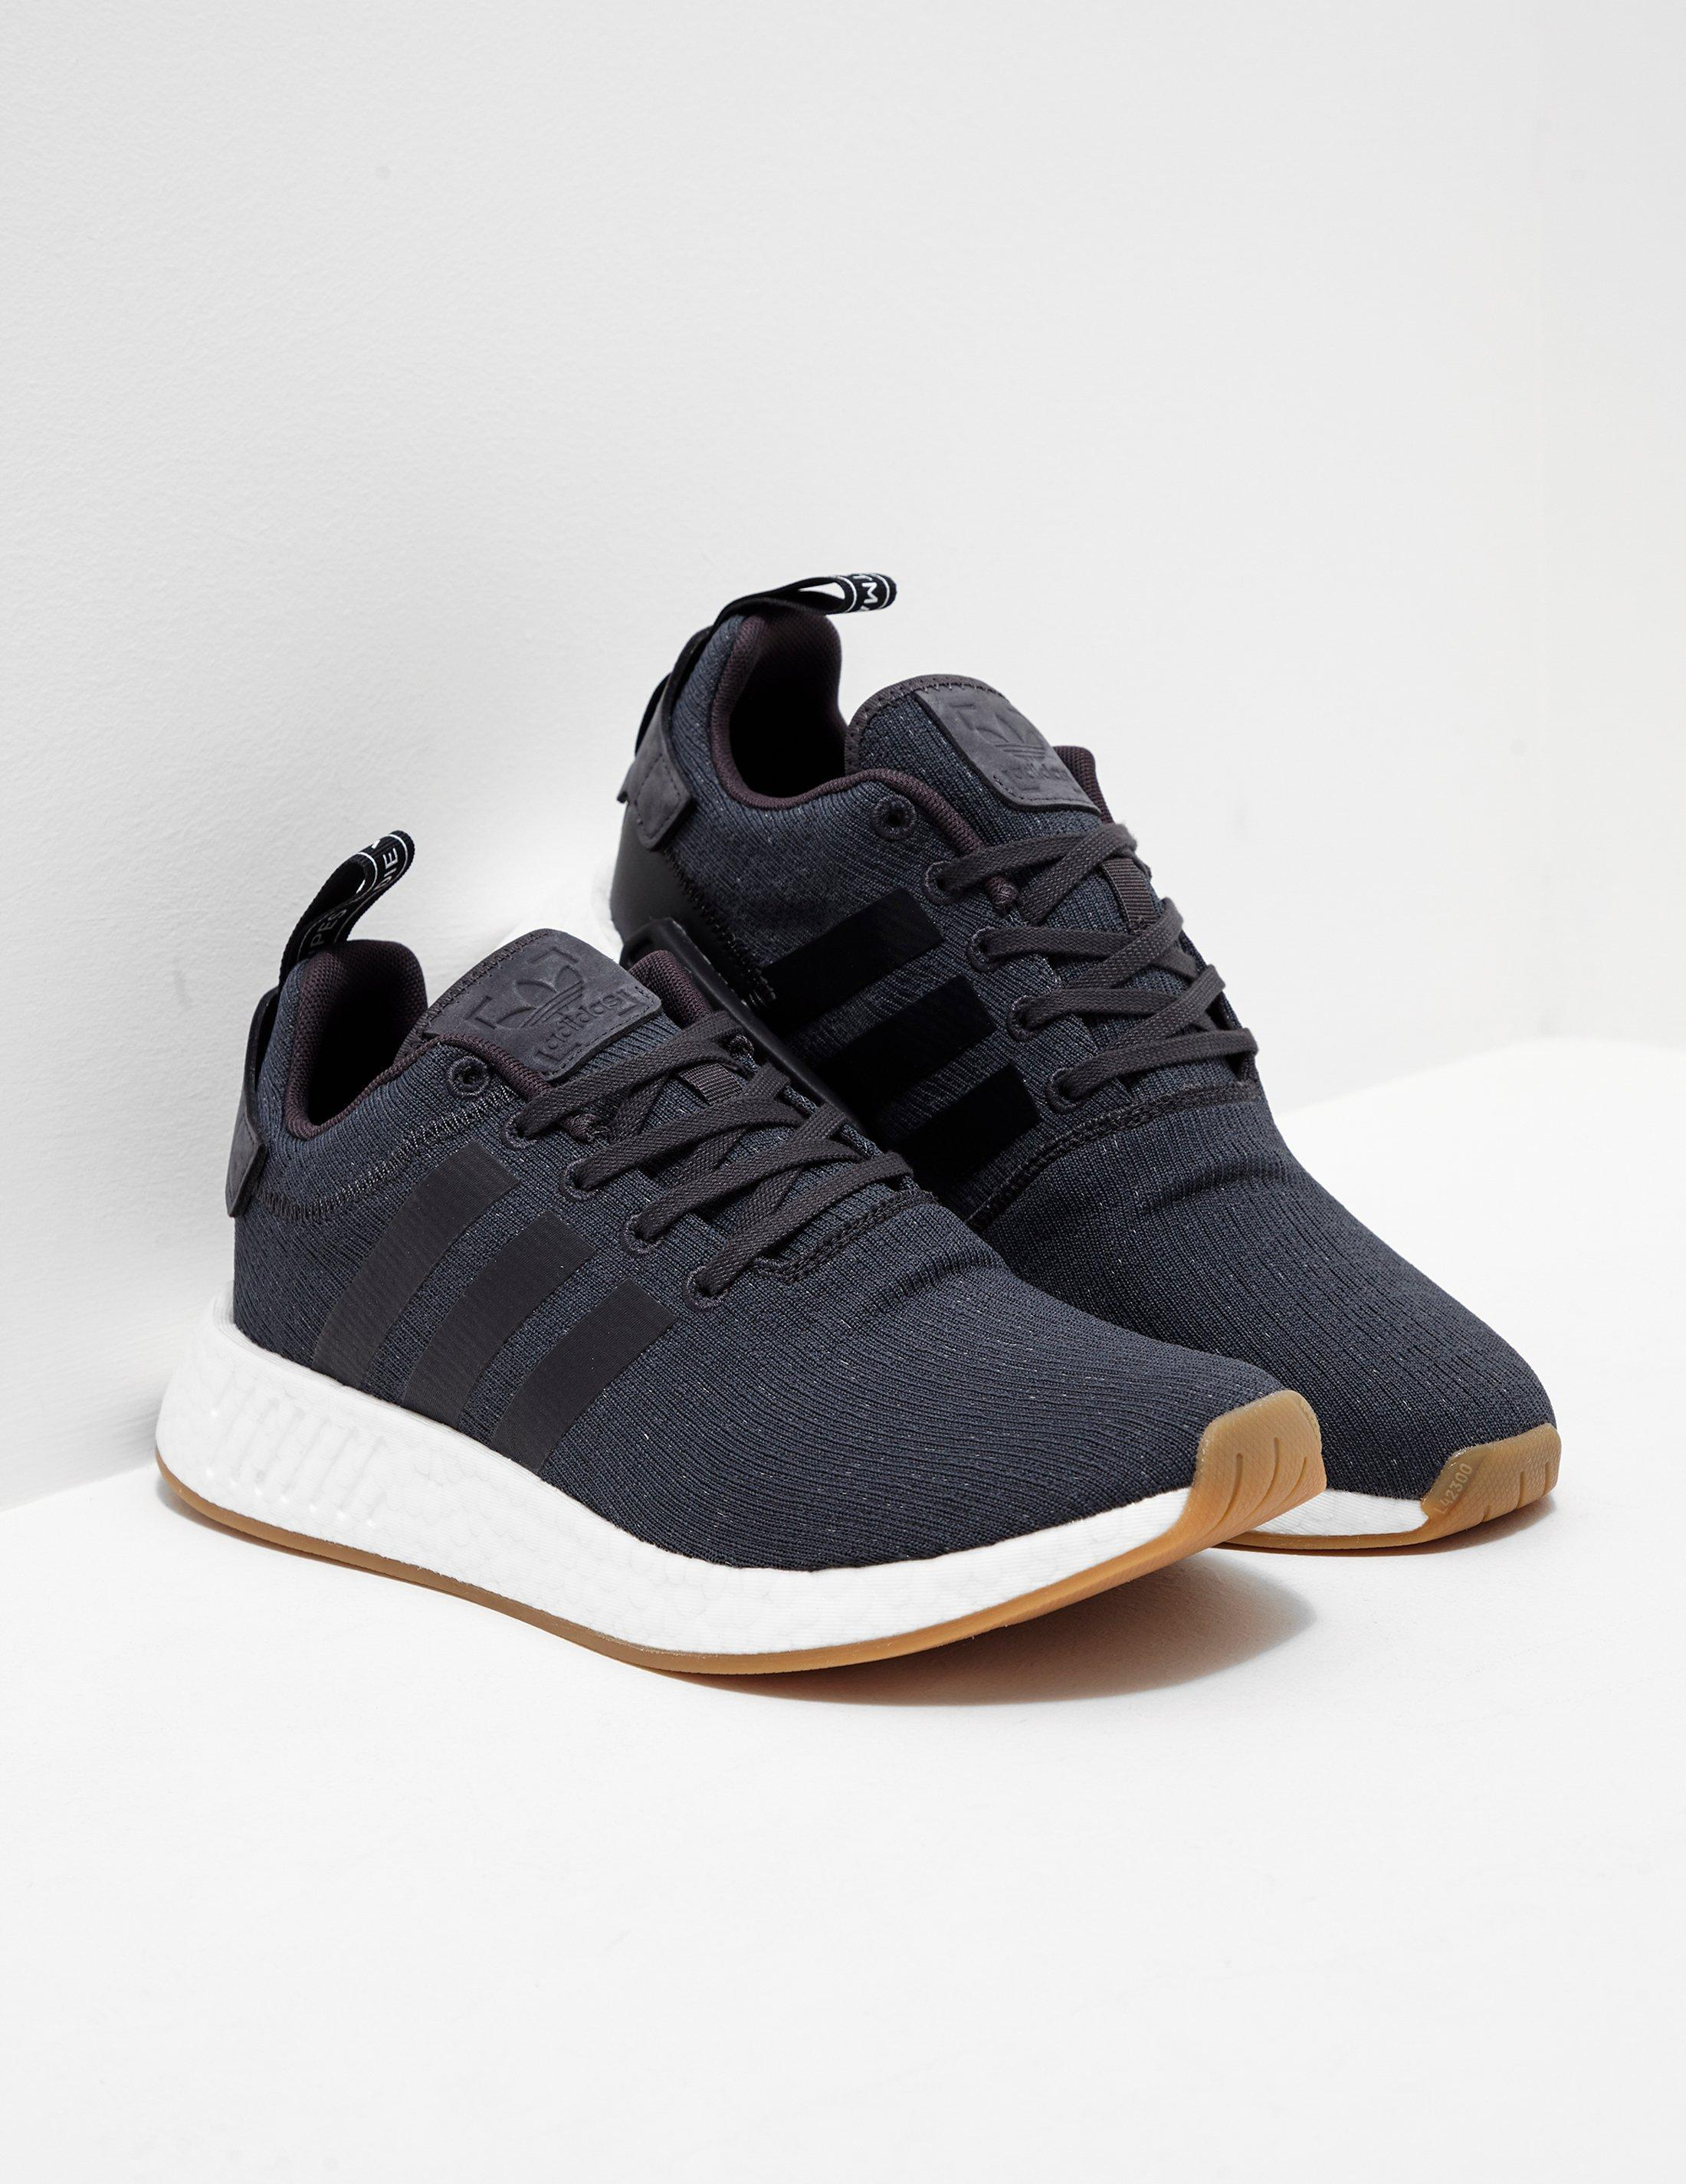 5d43f8b4381 Lyst adidas originals mens grey white in gray for men jpg 2200x2850 Adidas  nmd r2 mens